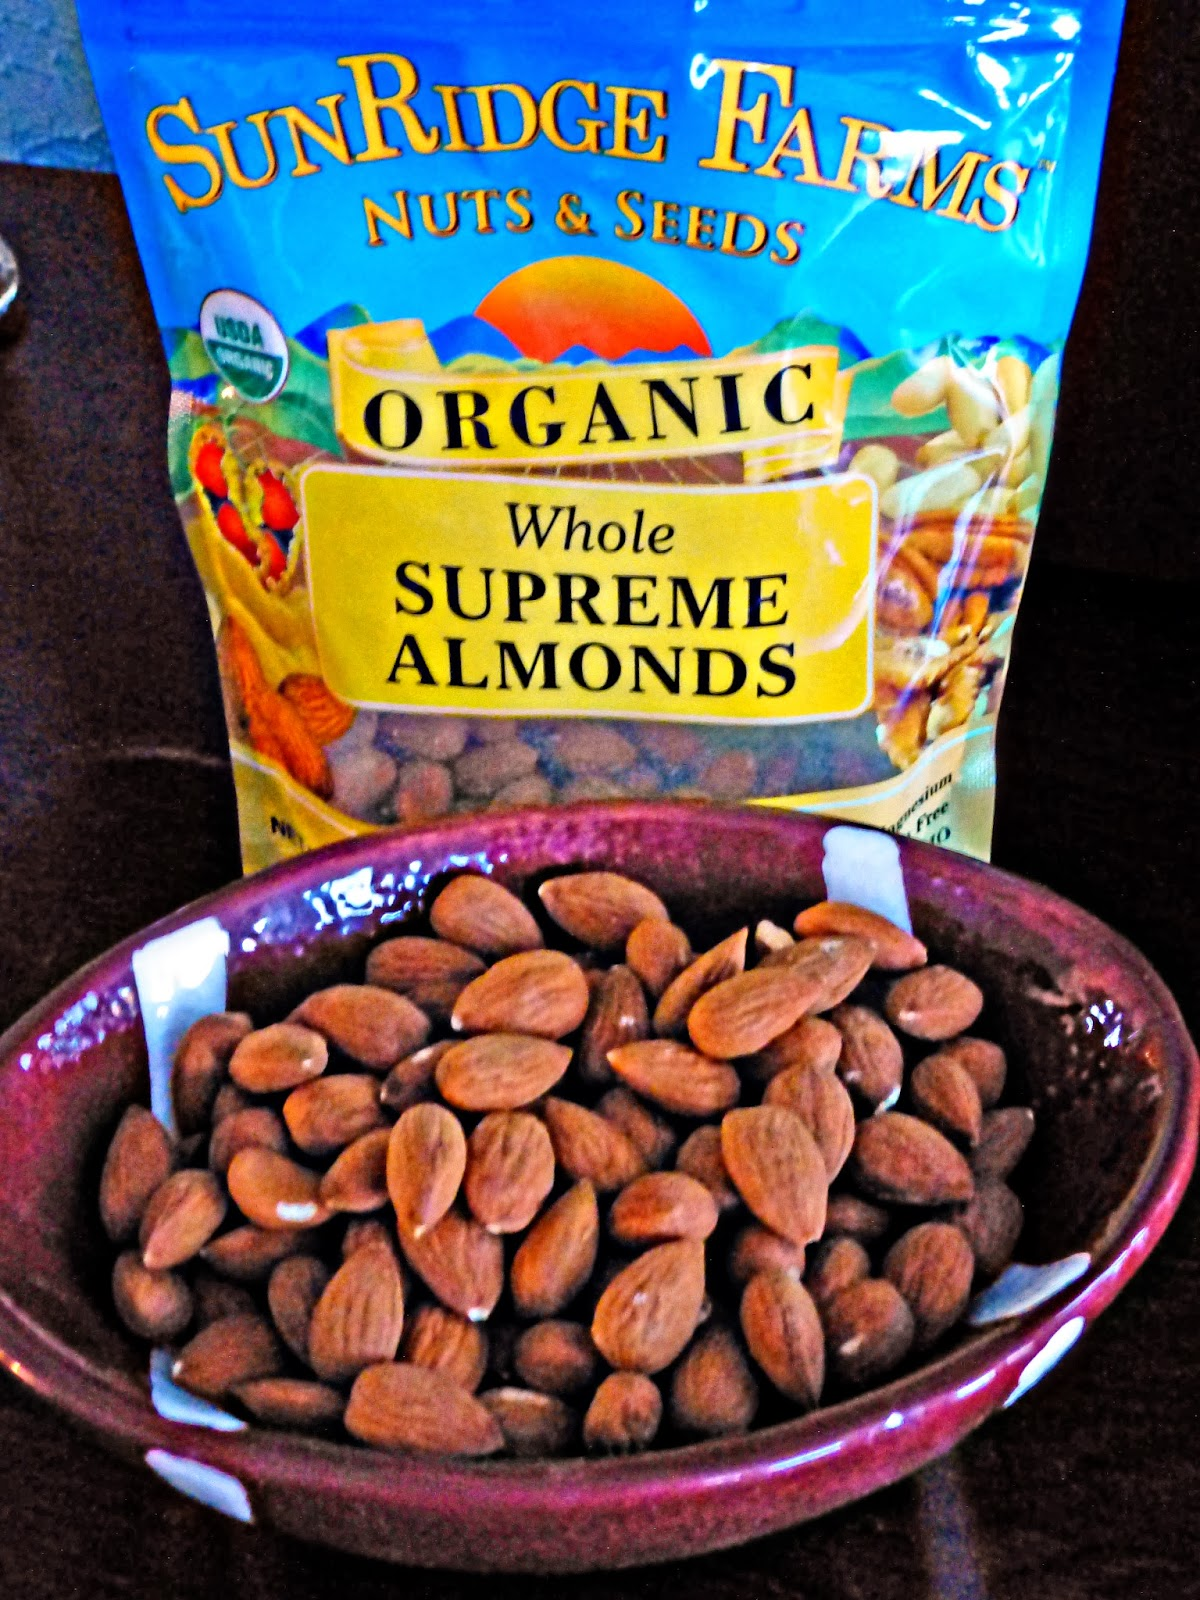 Sunridge Farms Nuts